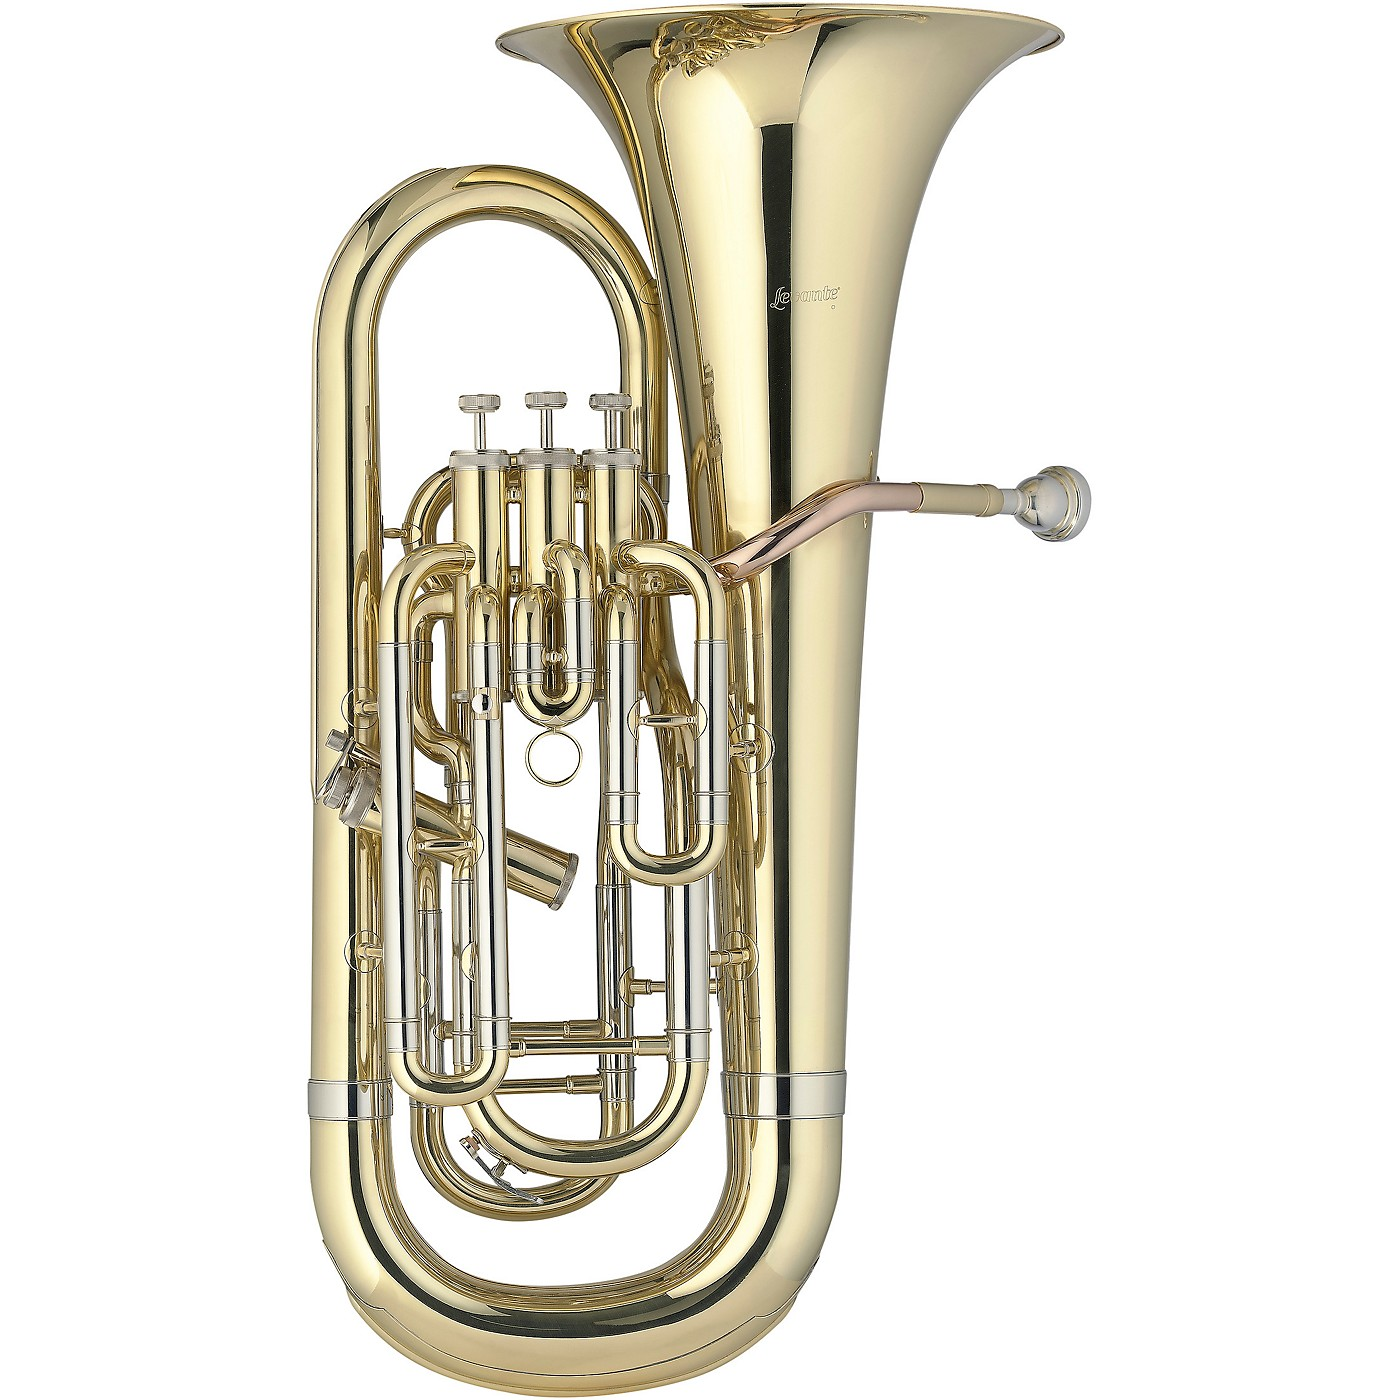 Levante LV-BH5411 Professional Bb Baritone Horn with 4 Monel Pistons - Gold Trim Kit thumbnail